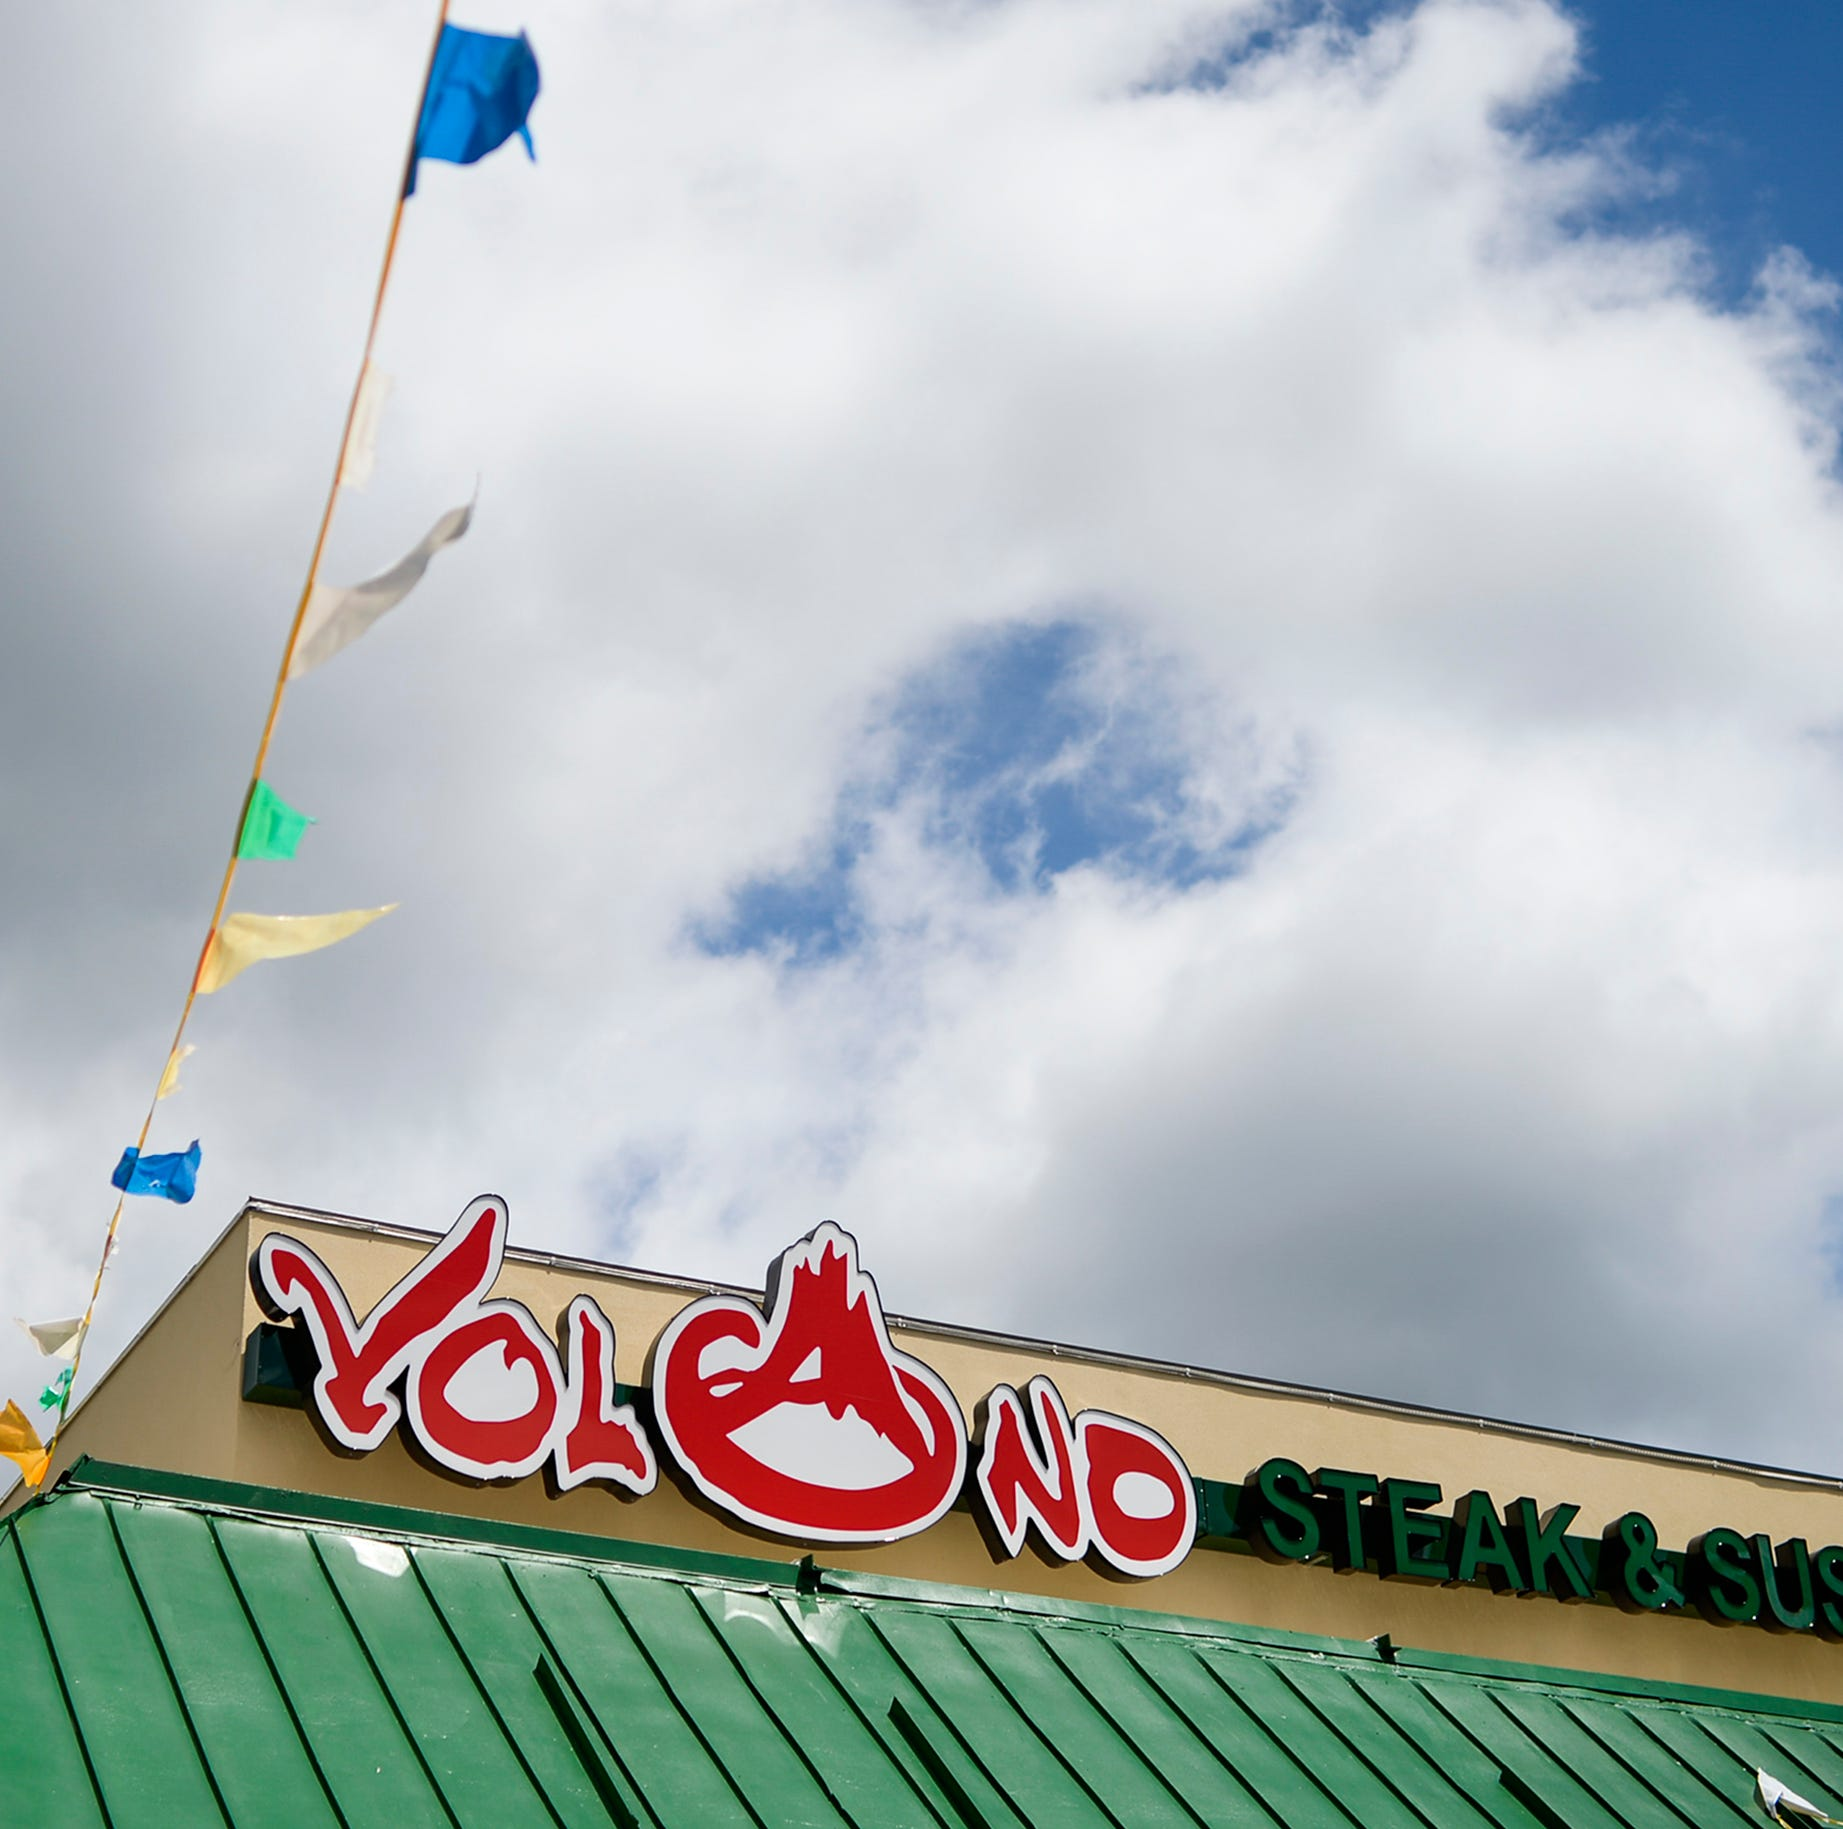 Volcano Steak & Sushi plans to open a  location in Maple Shade in the next year